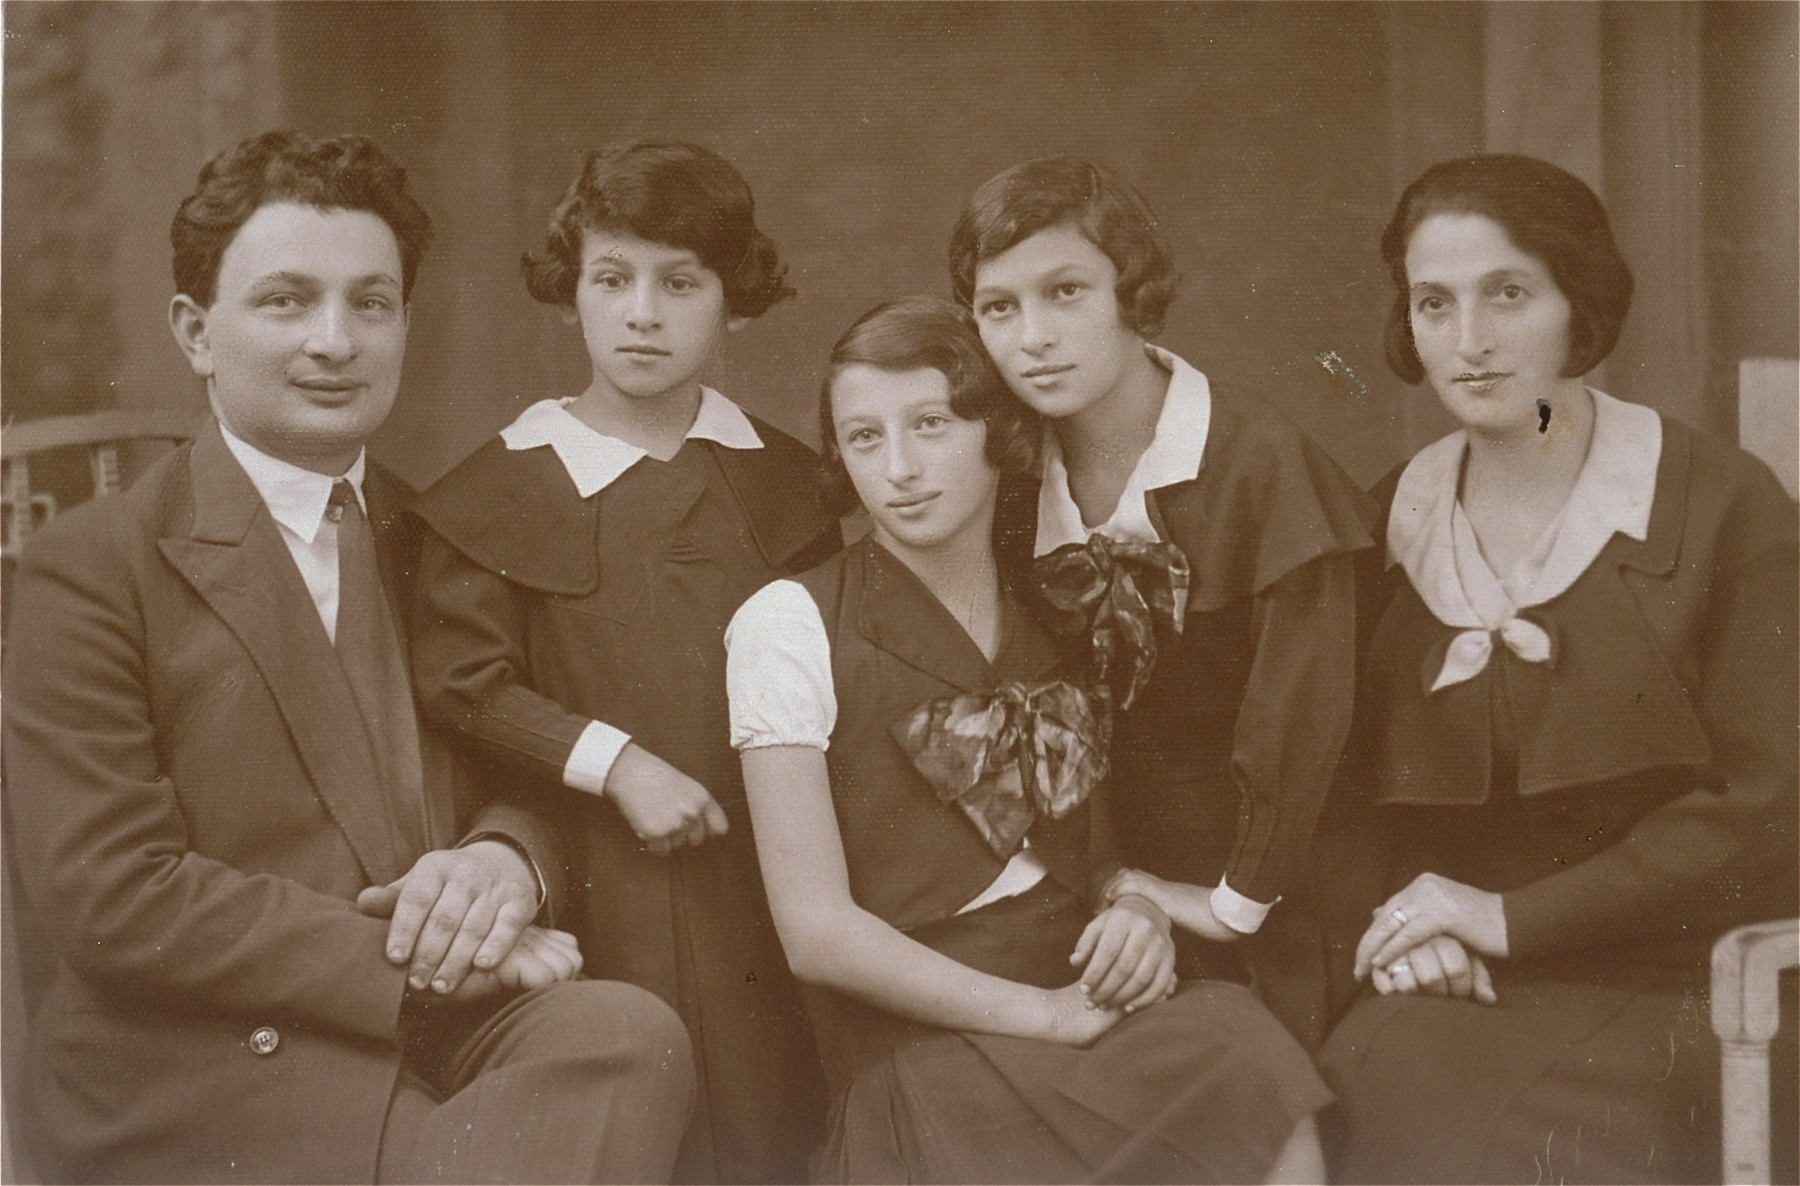 Portrait of the Wiernik family in Sosnowiec.  Pictured from left to right are: Szymon Avigdor, Chava, Mania and Chana, and Hinda (Kastenberg) Wiernik.